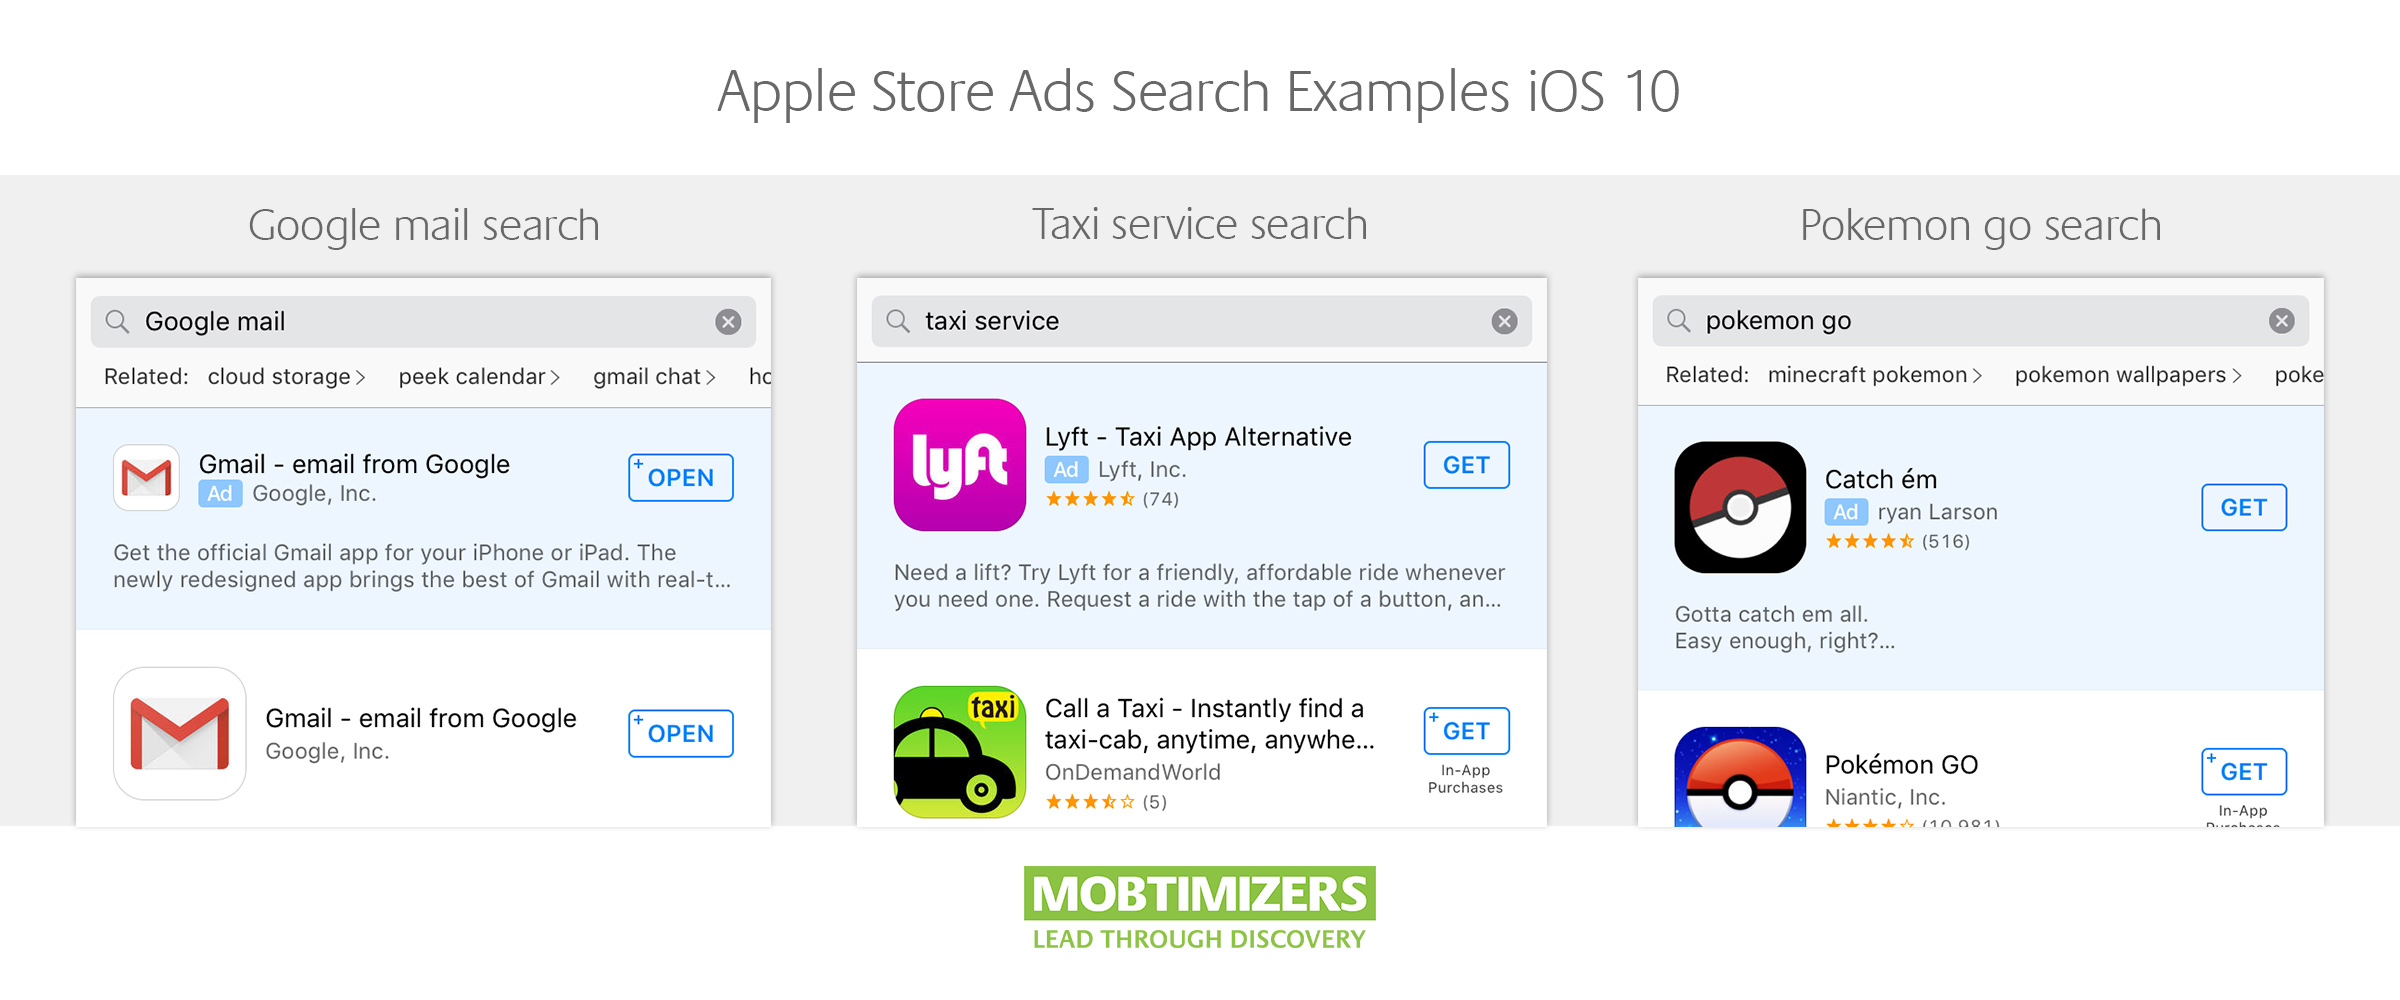 Examples of search ads in the apple app store (ios 10) ASO